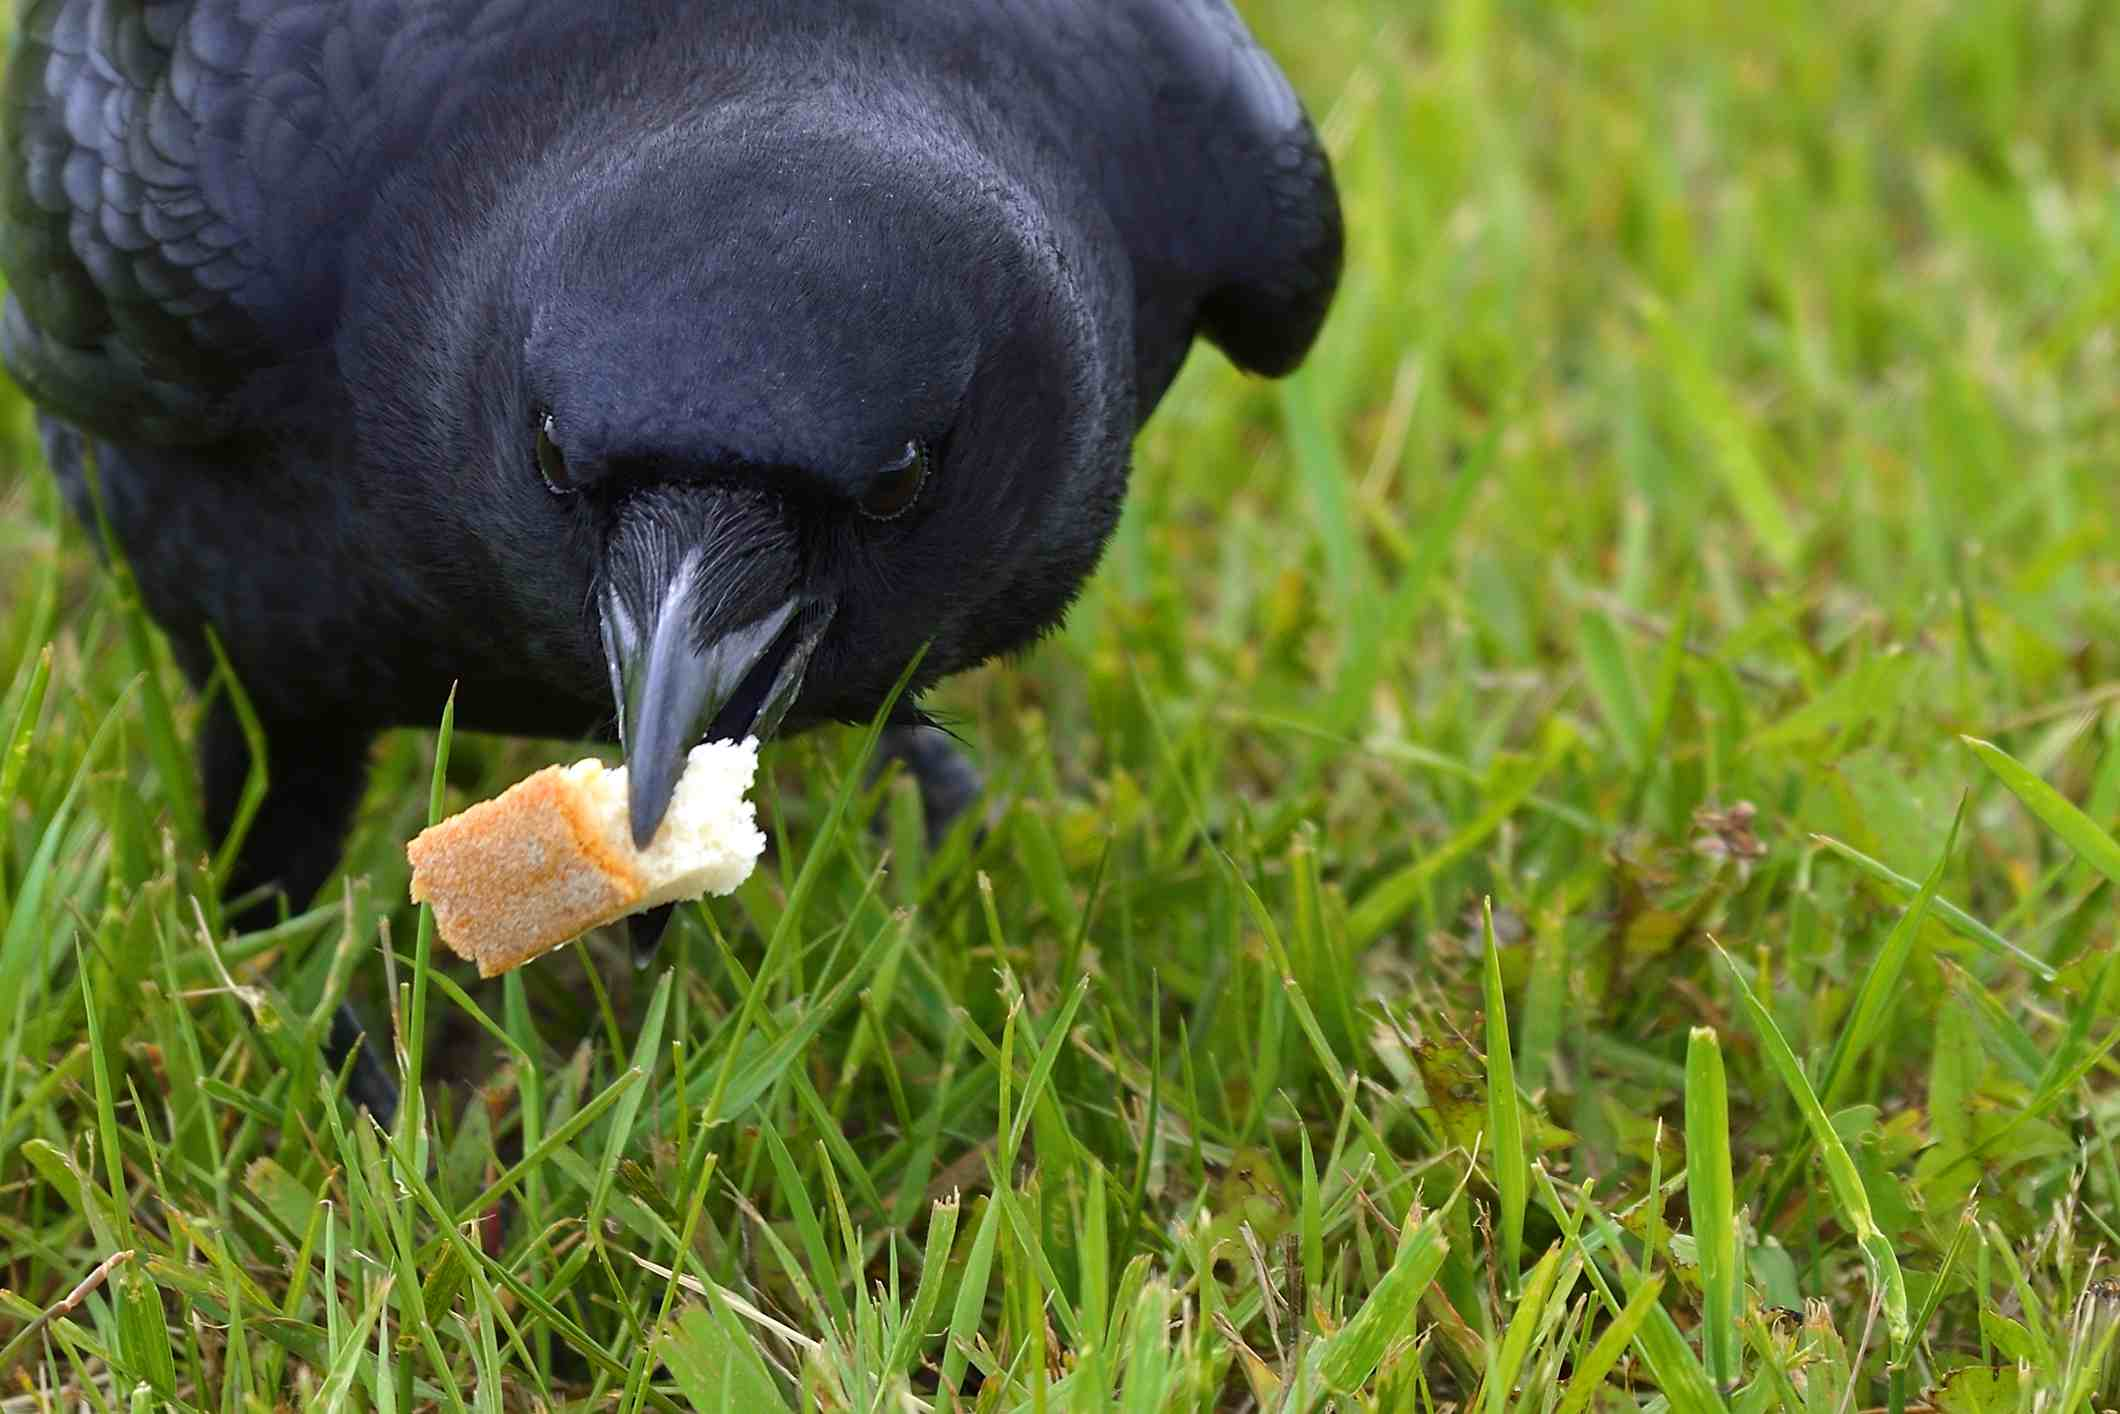 crow holding bread in its mouth